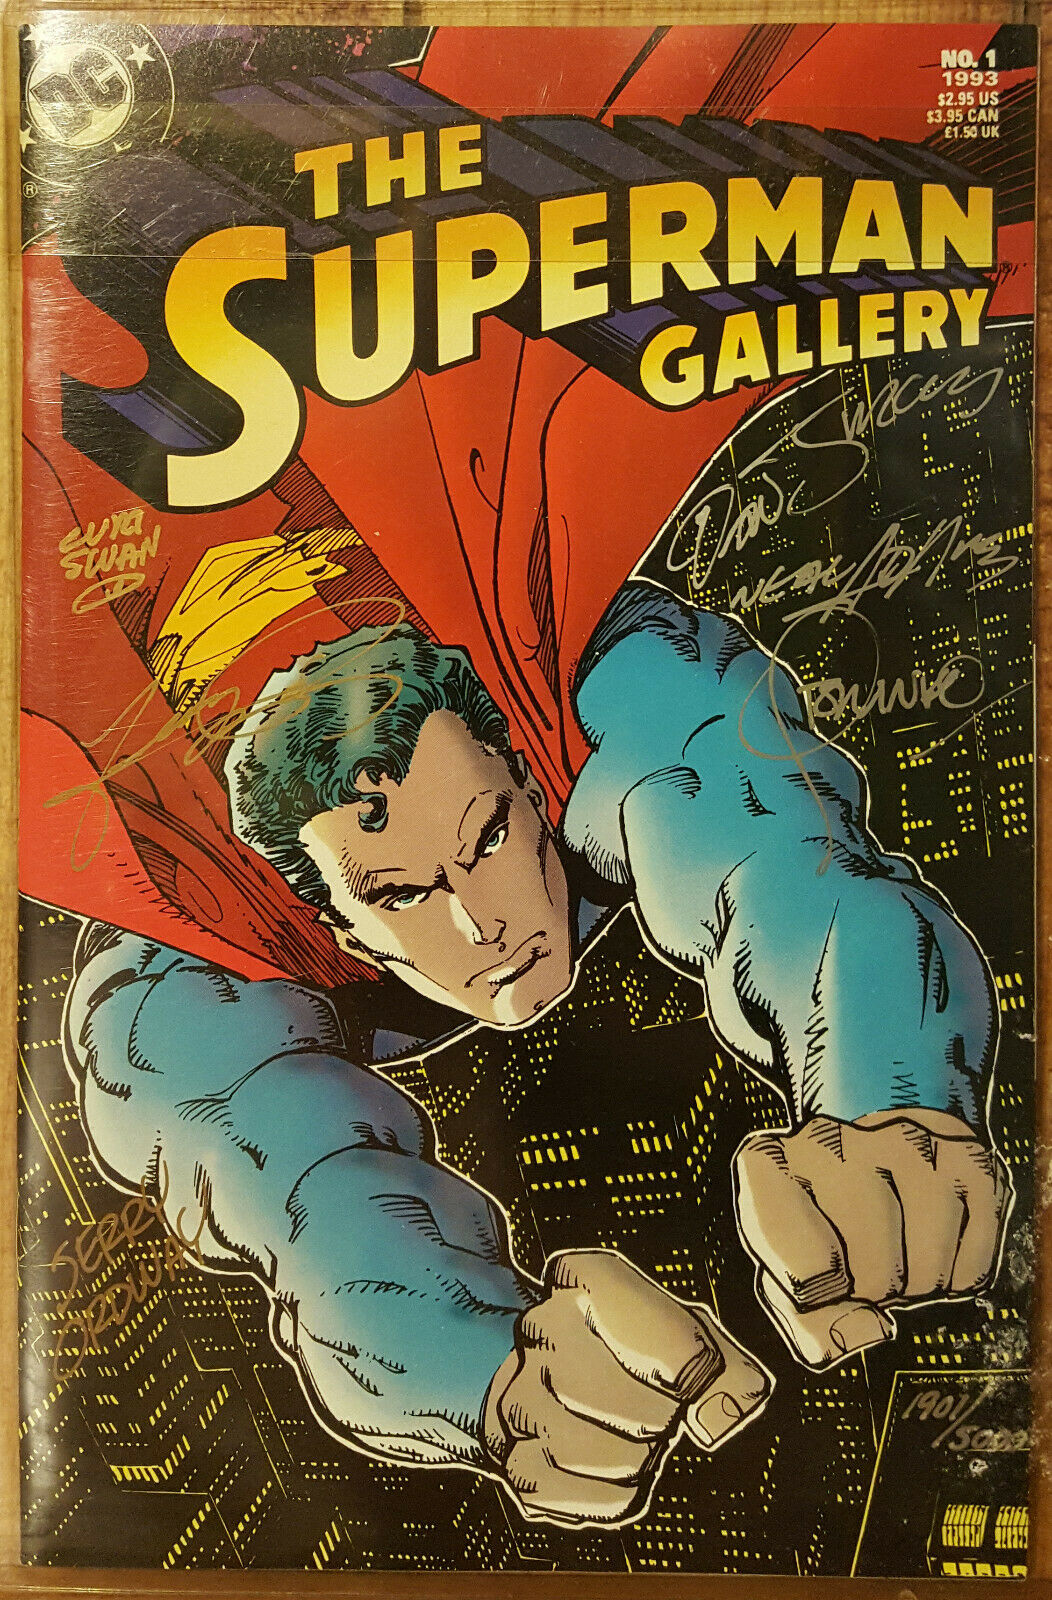 THE SUPERMAN GALLERY #1 COA # 1901 SIGNED BY NEAL ADAMS GEORGE PEREZ CURT SWAN